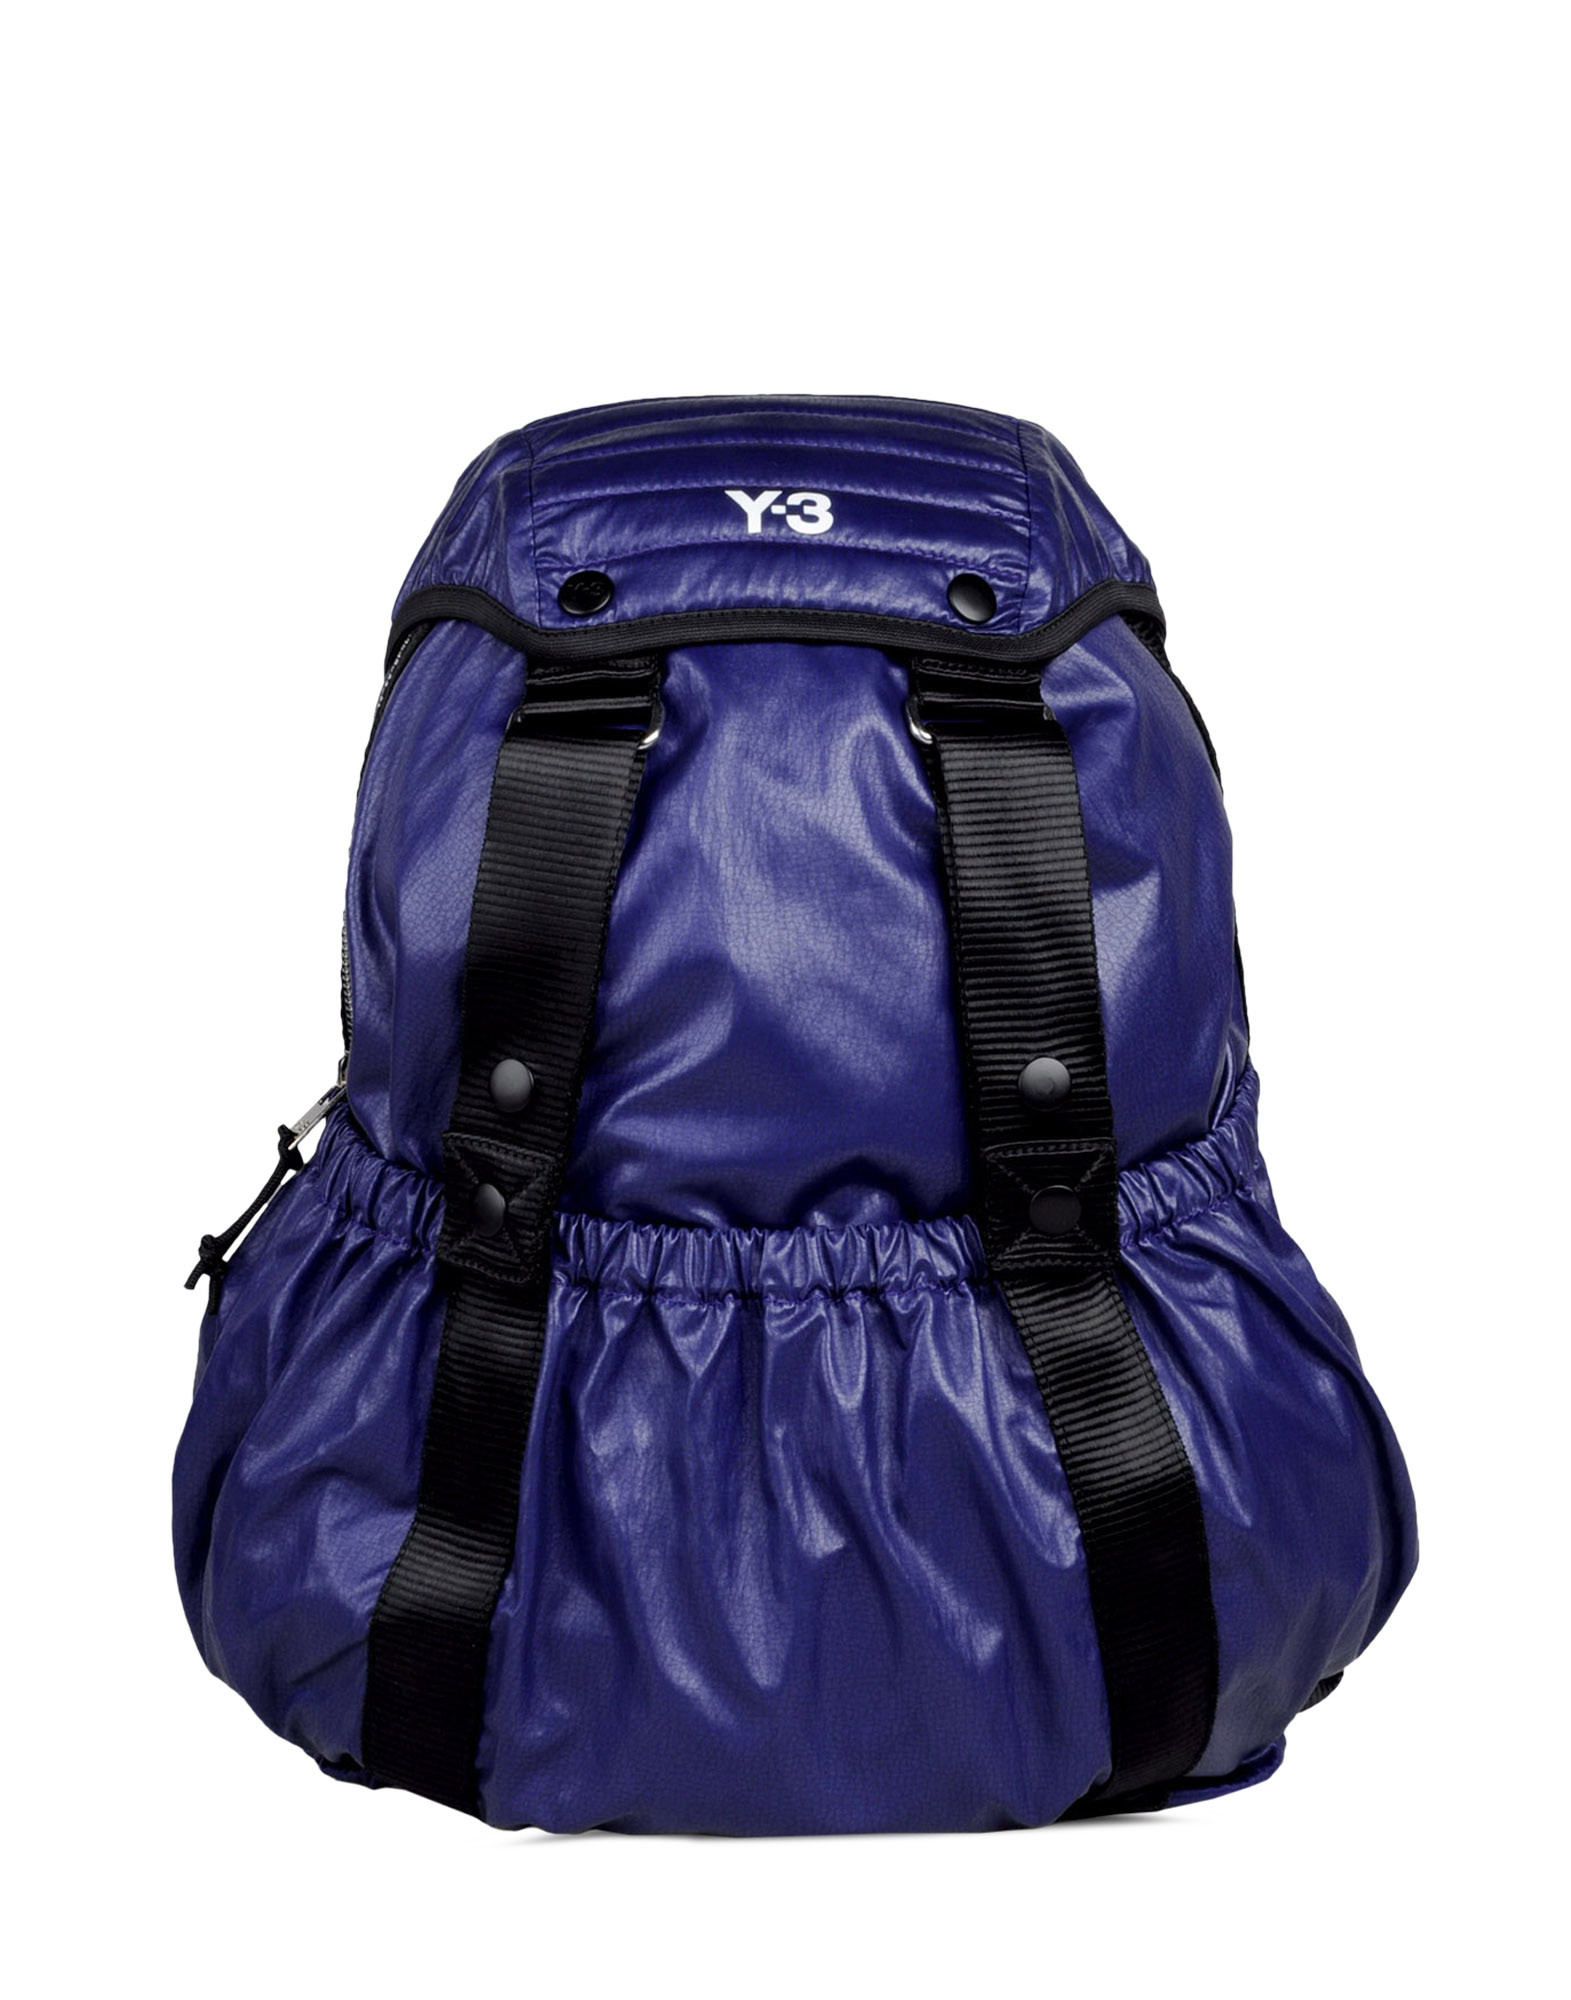 Y 3 Future Sport Backpack Backpacks   Adidas Y-3 Official ... 2c6bc5d546